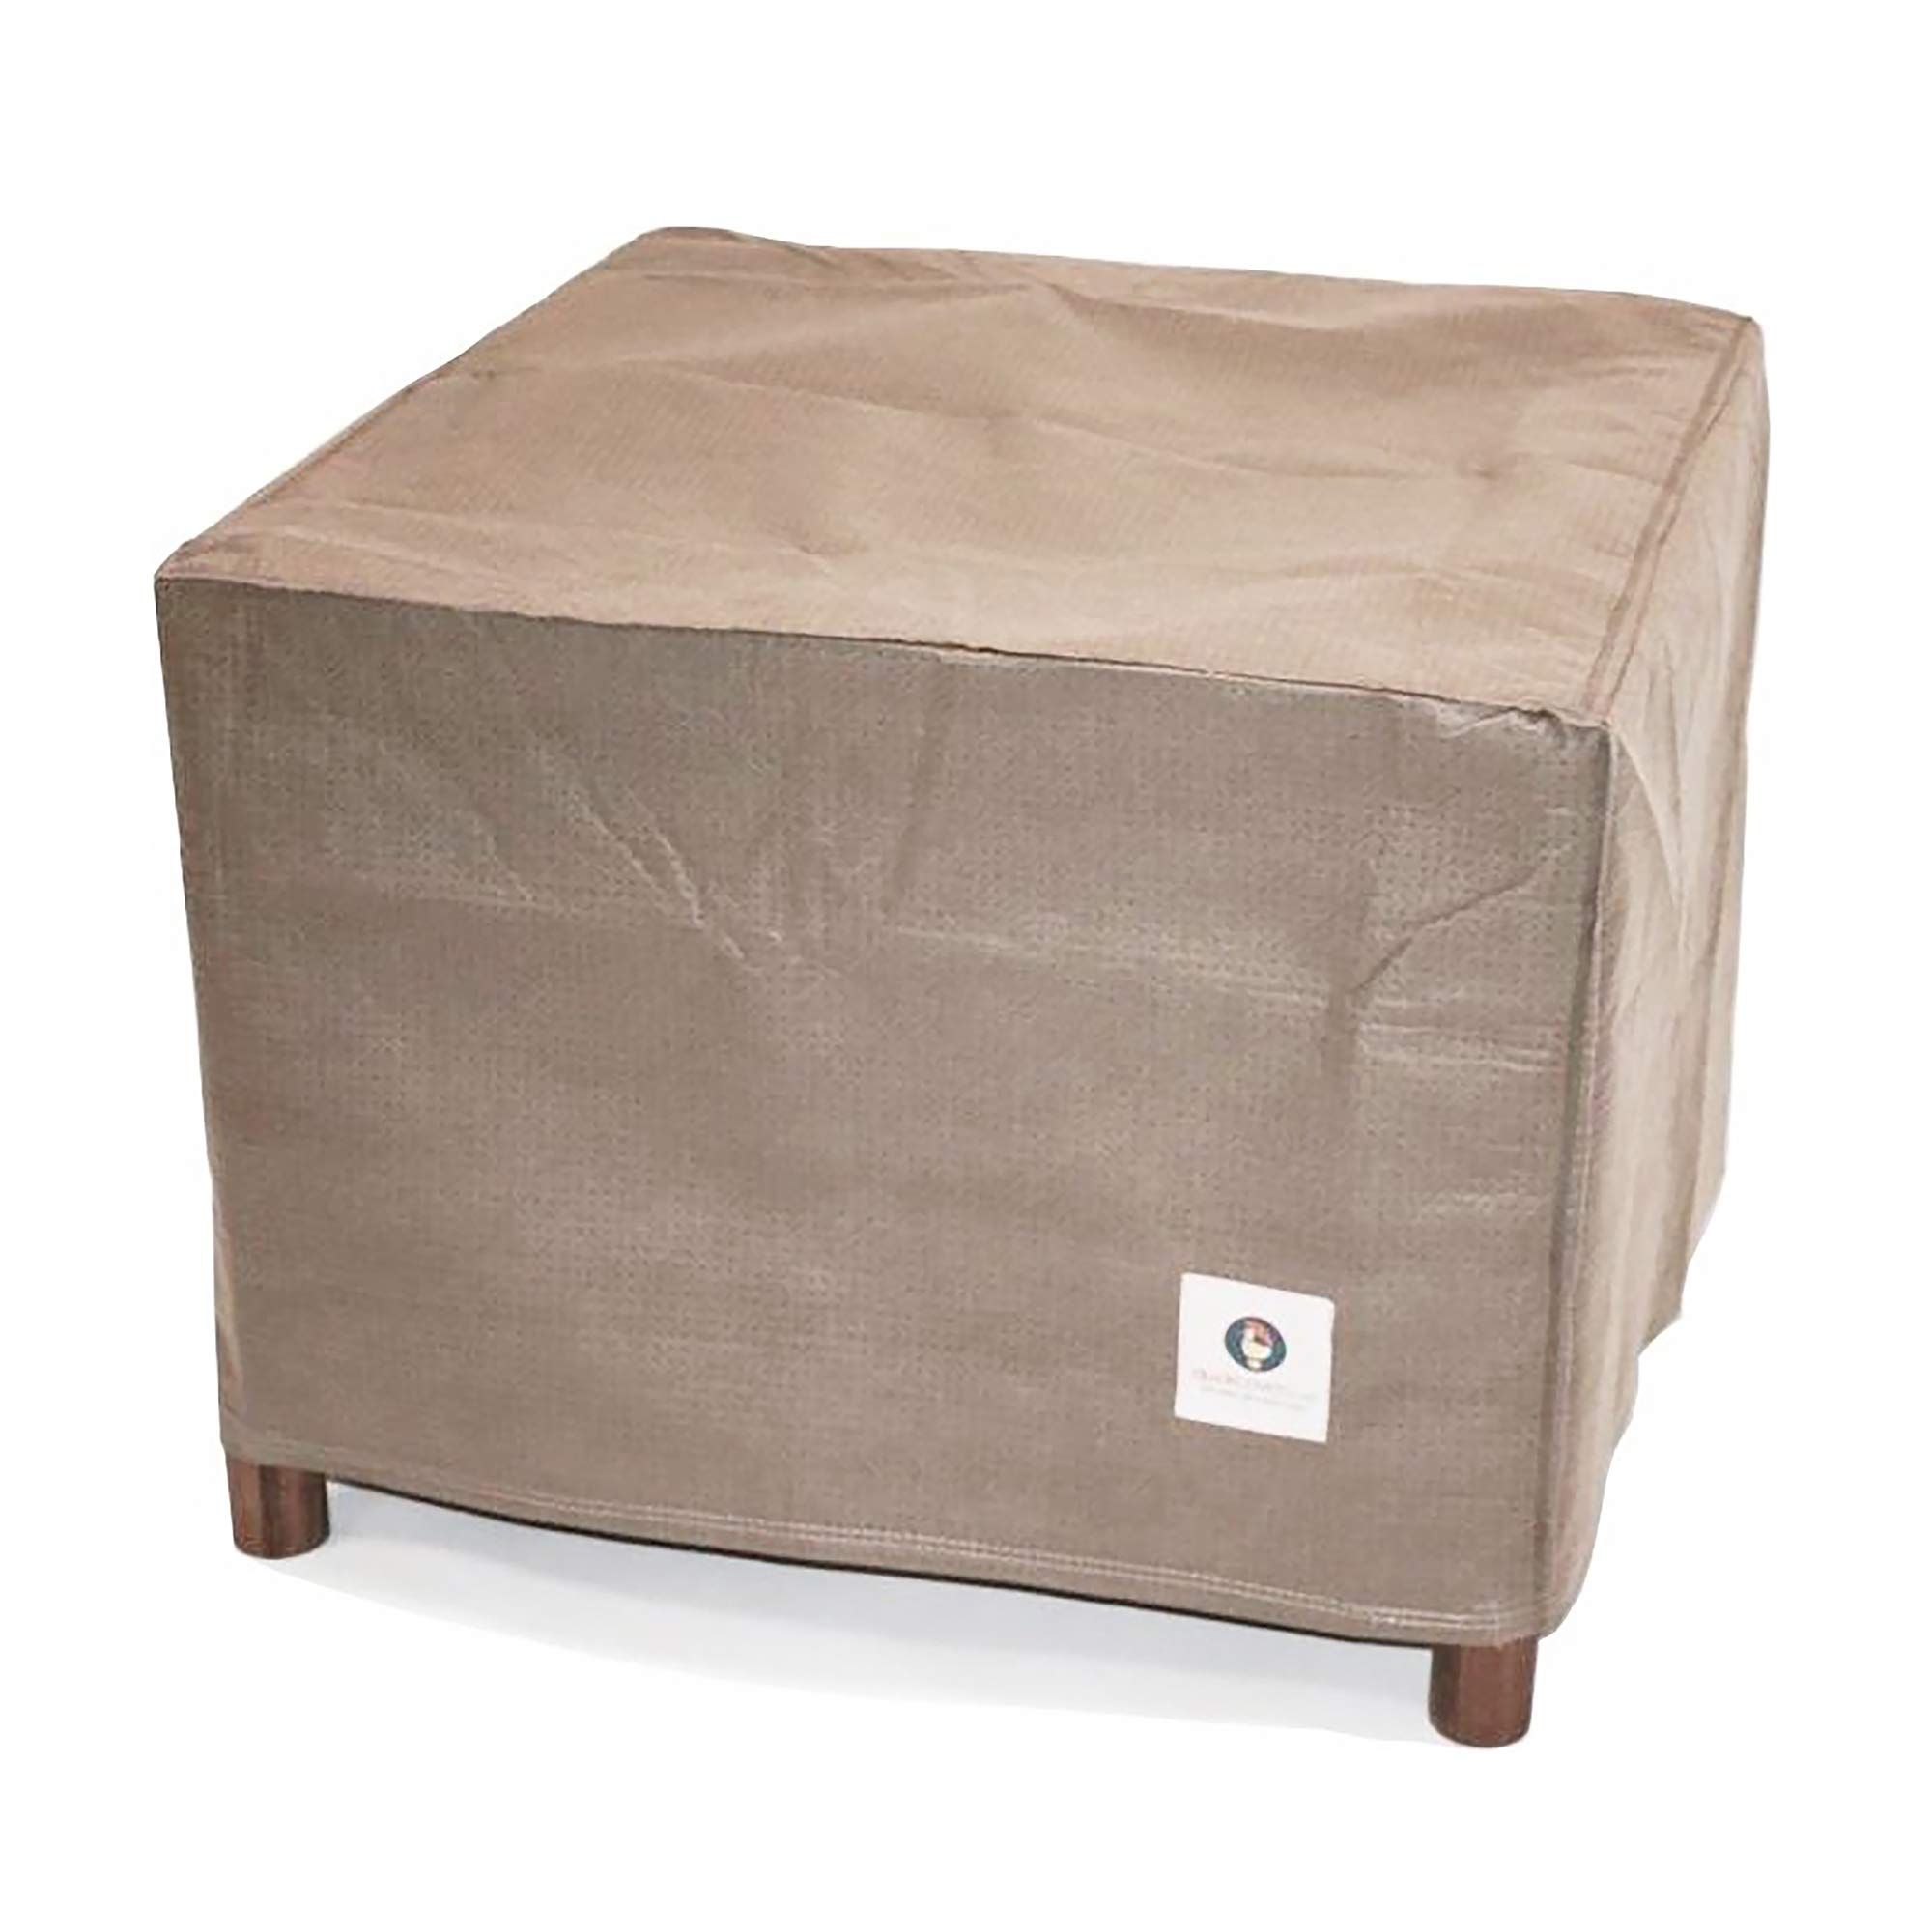 Duck Covers Elite Square Patio Ottoman or Side Table Cover, 32-Inch by Duck Covers